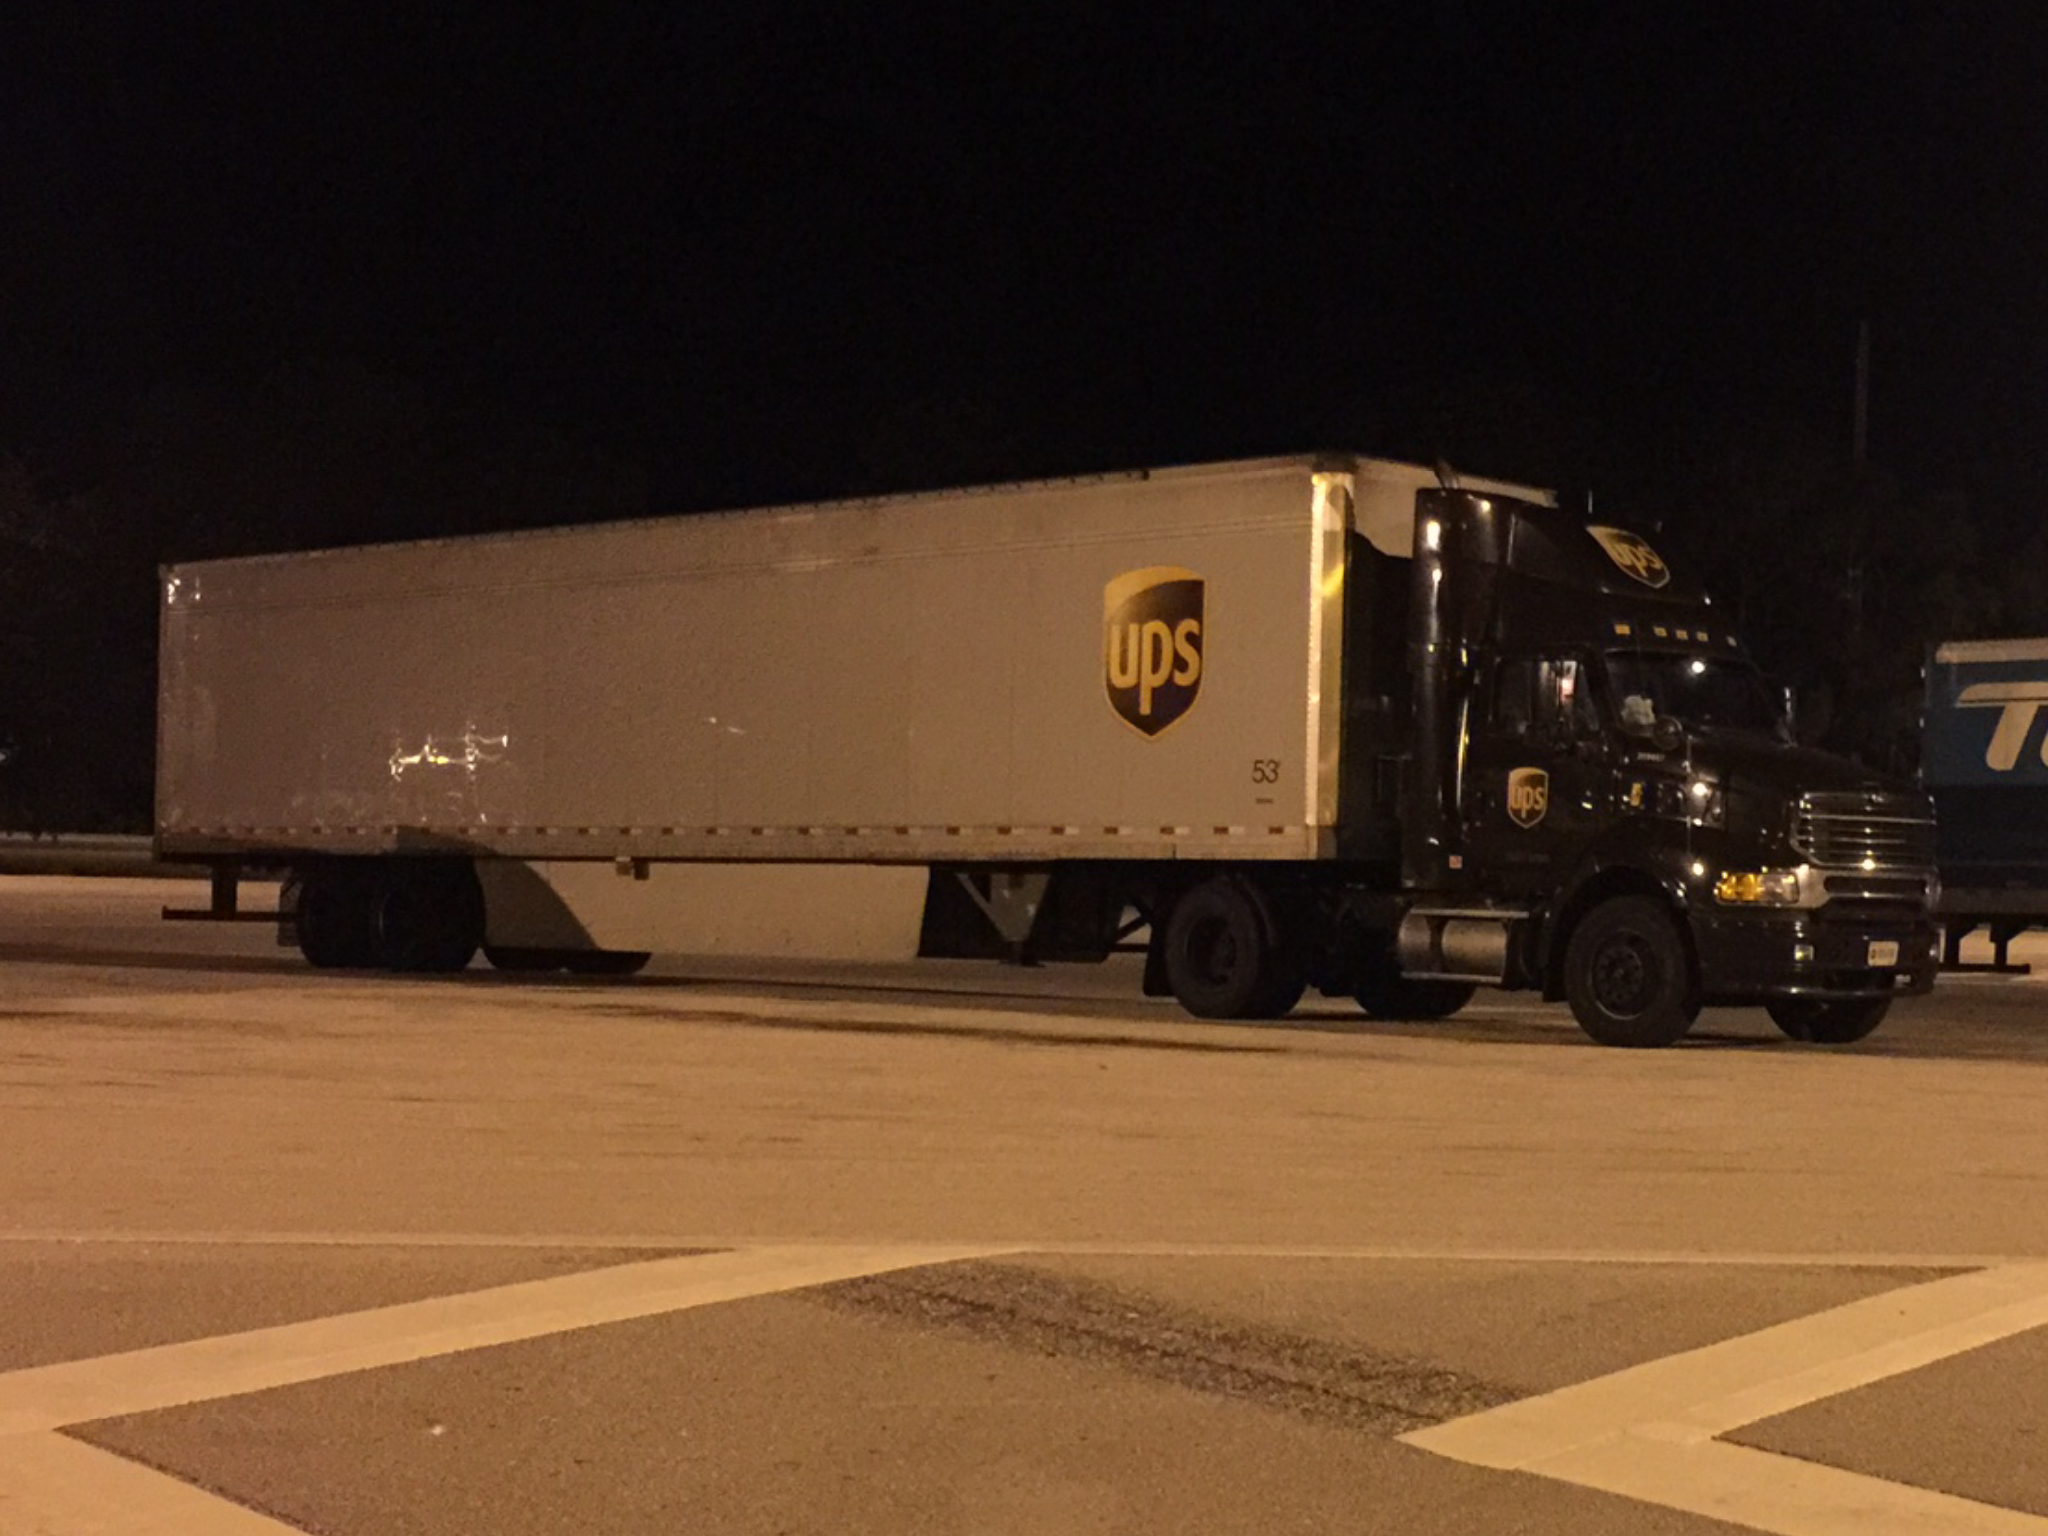 UPS | Truckers Review Jobs, Pay, Home Time, Equipment